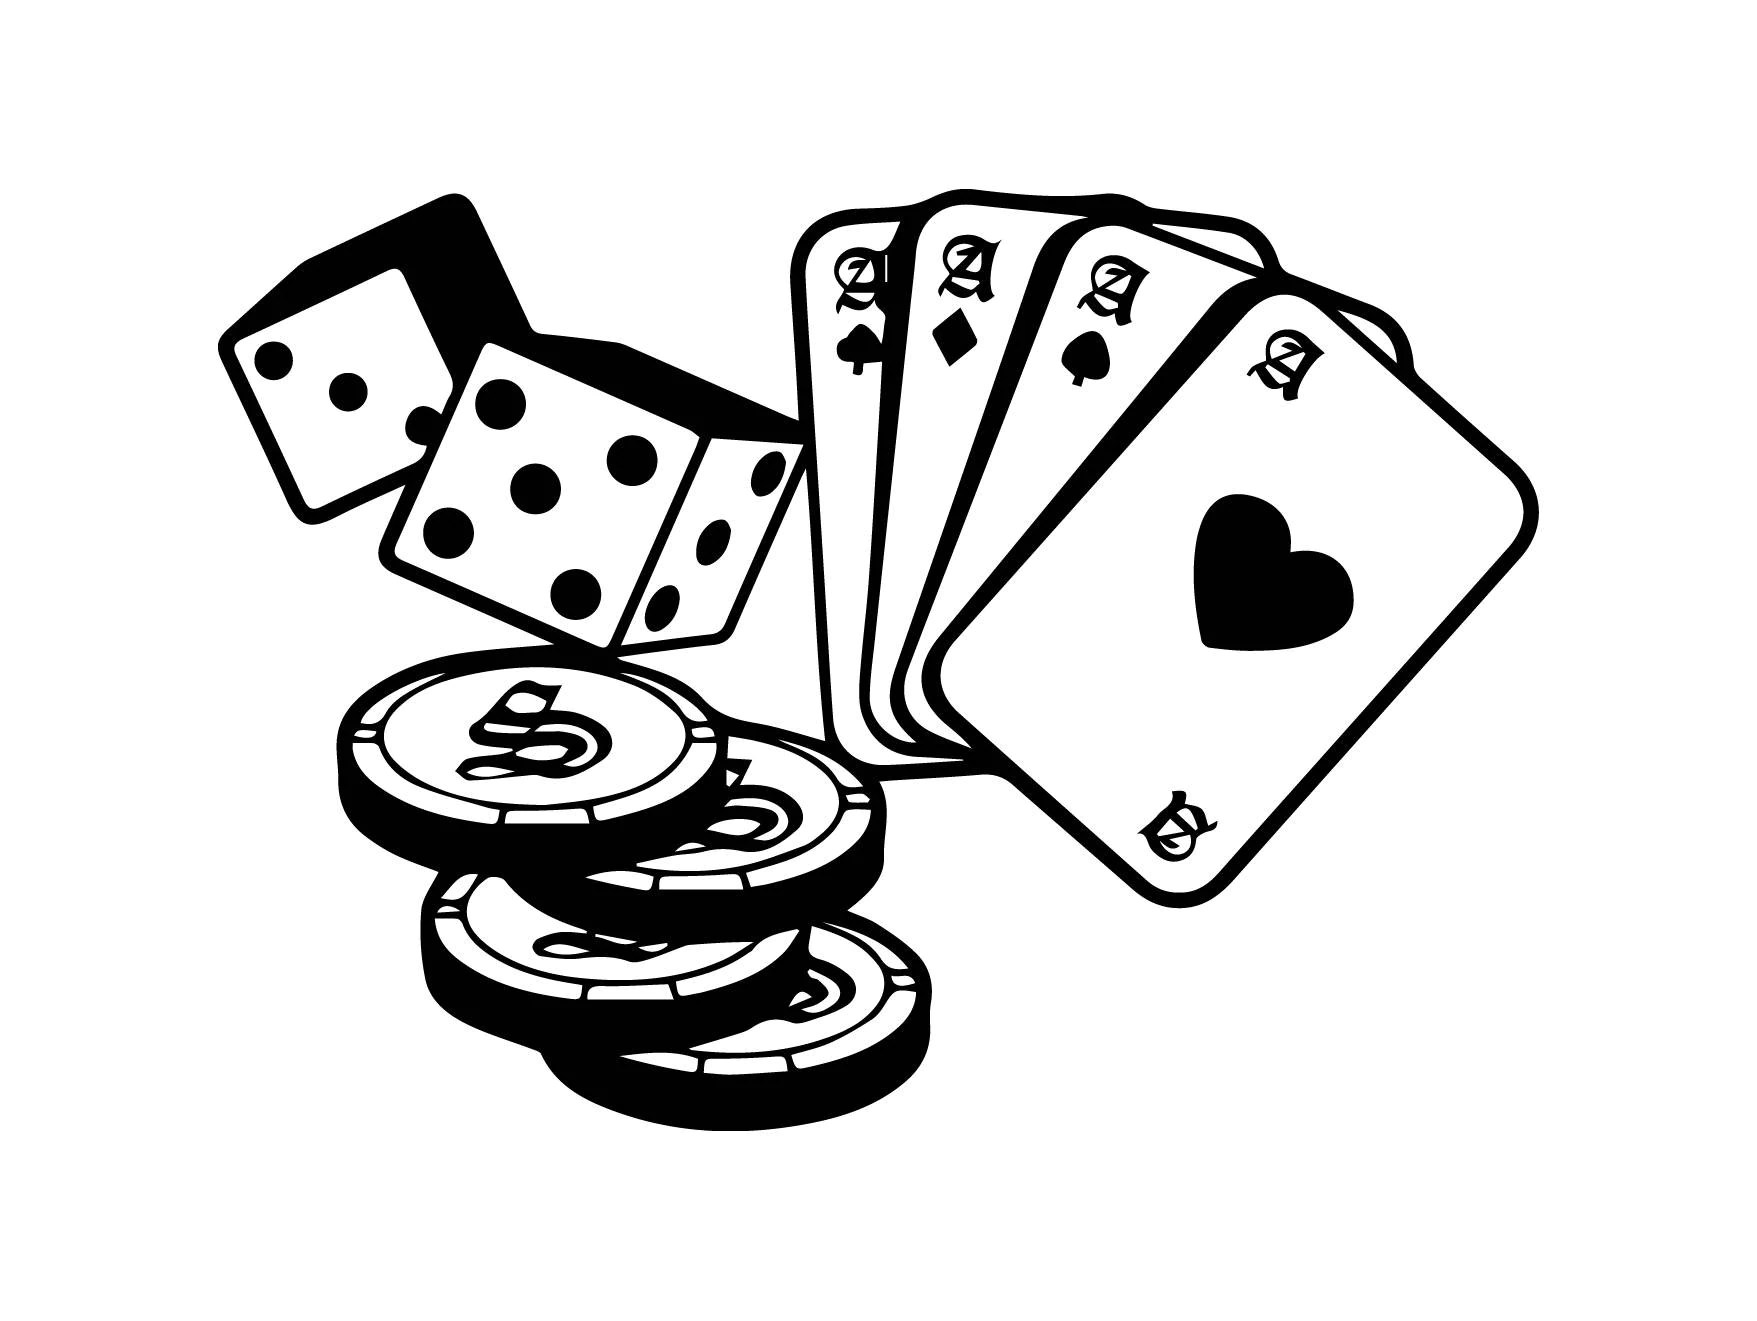 Casino Cards Game Gambler Dice Ships Money Business Poker